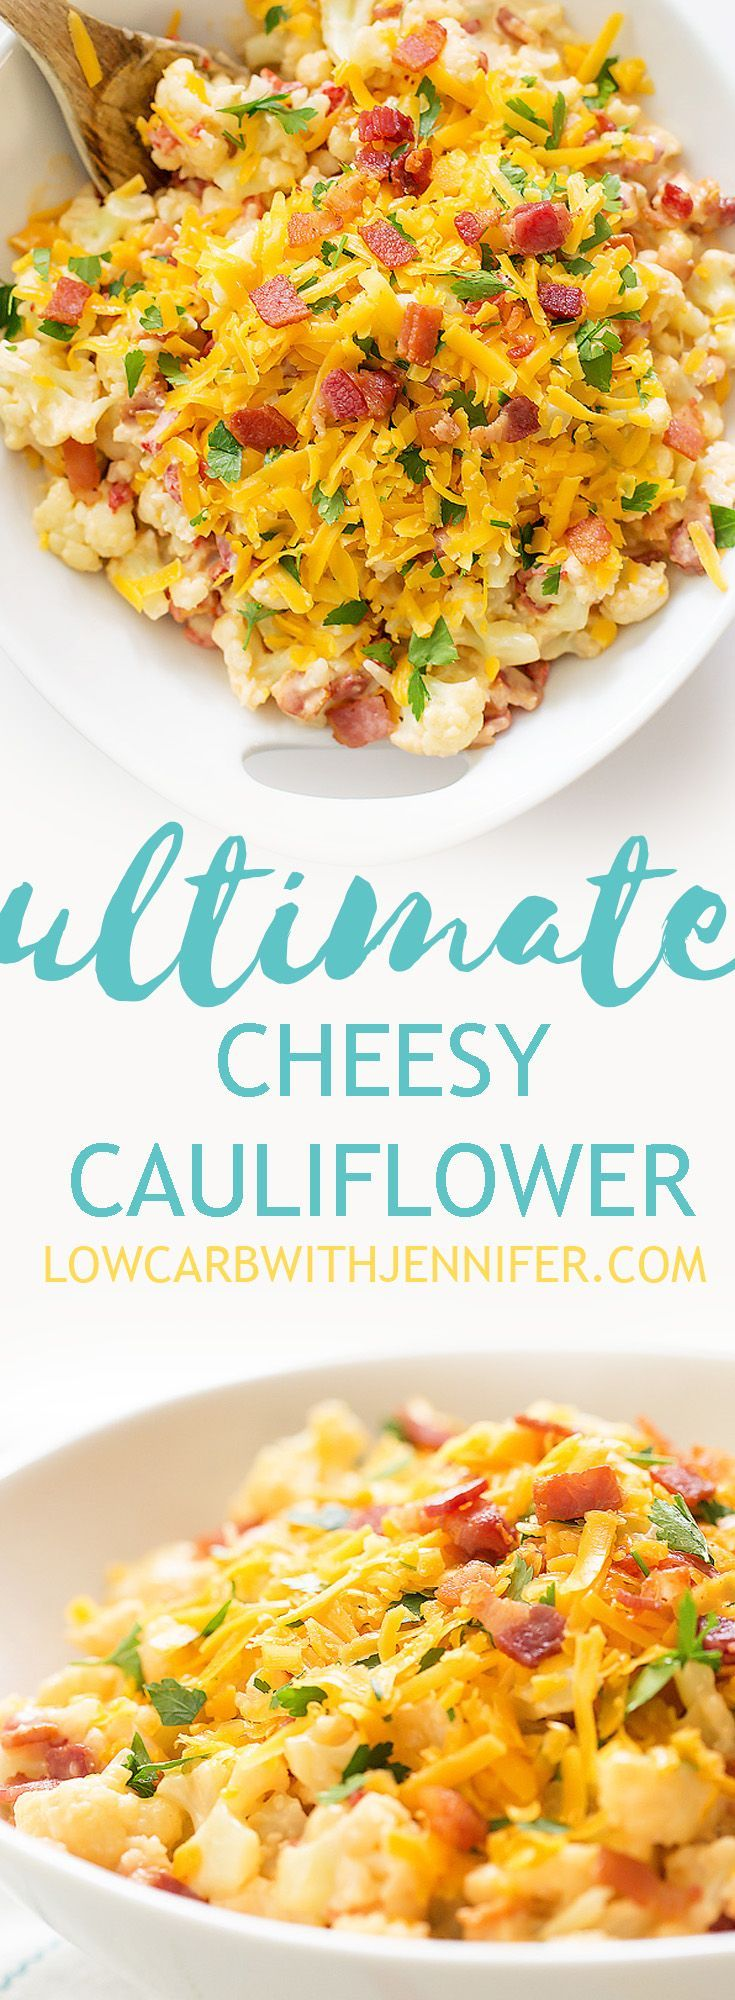 The Ultimate Creamy Bacony Cheesy Cauliflower. Say goodbye to bland cauliflower and make this cheesy bacony goodness stat.